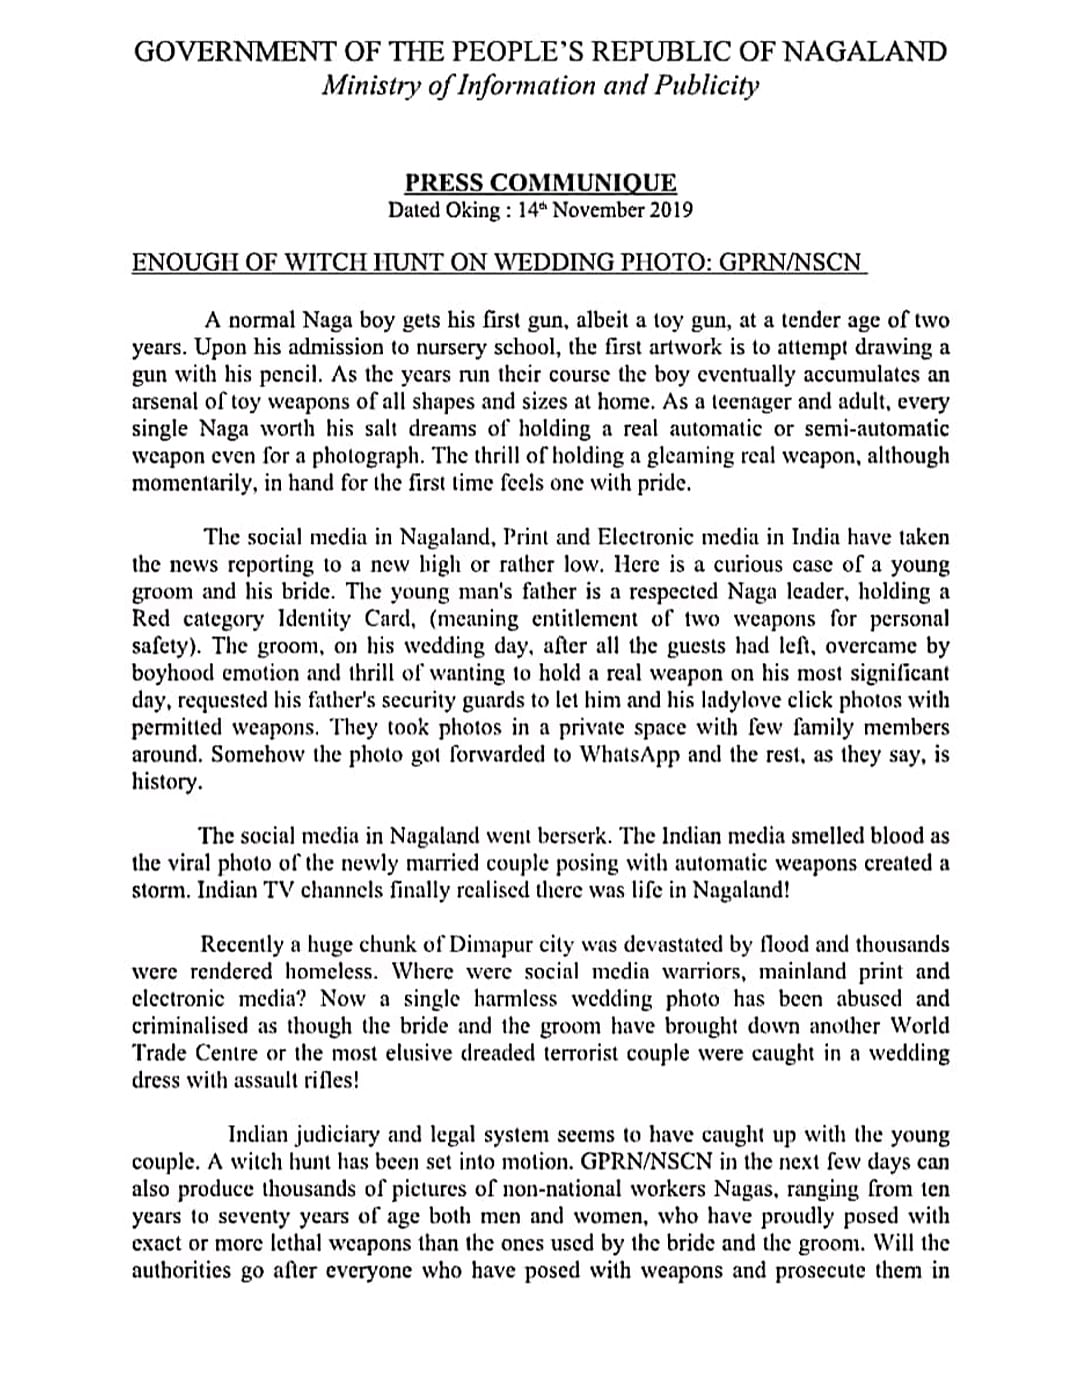 The press communique issued by the MIP of GPRN/NSCN (page 1)